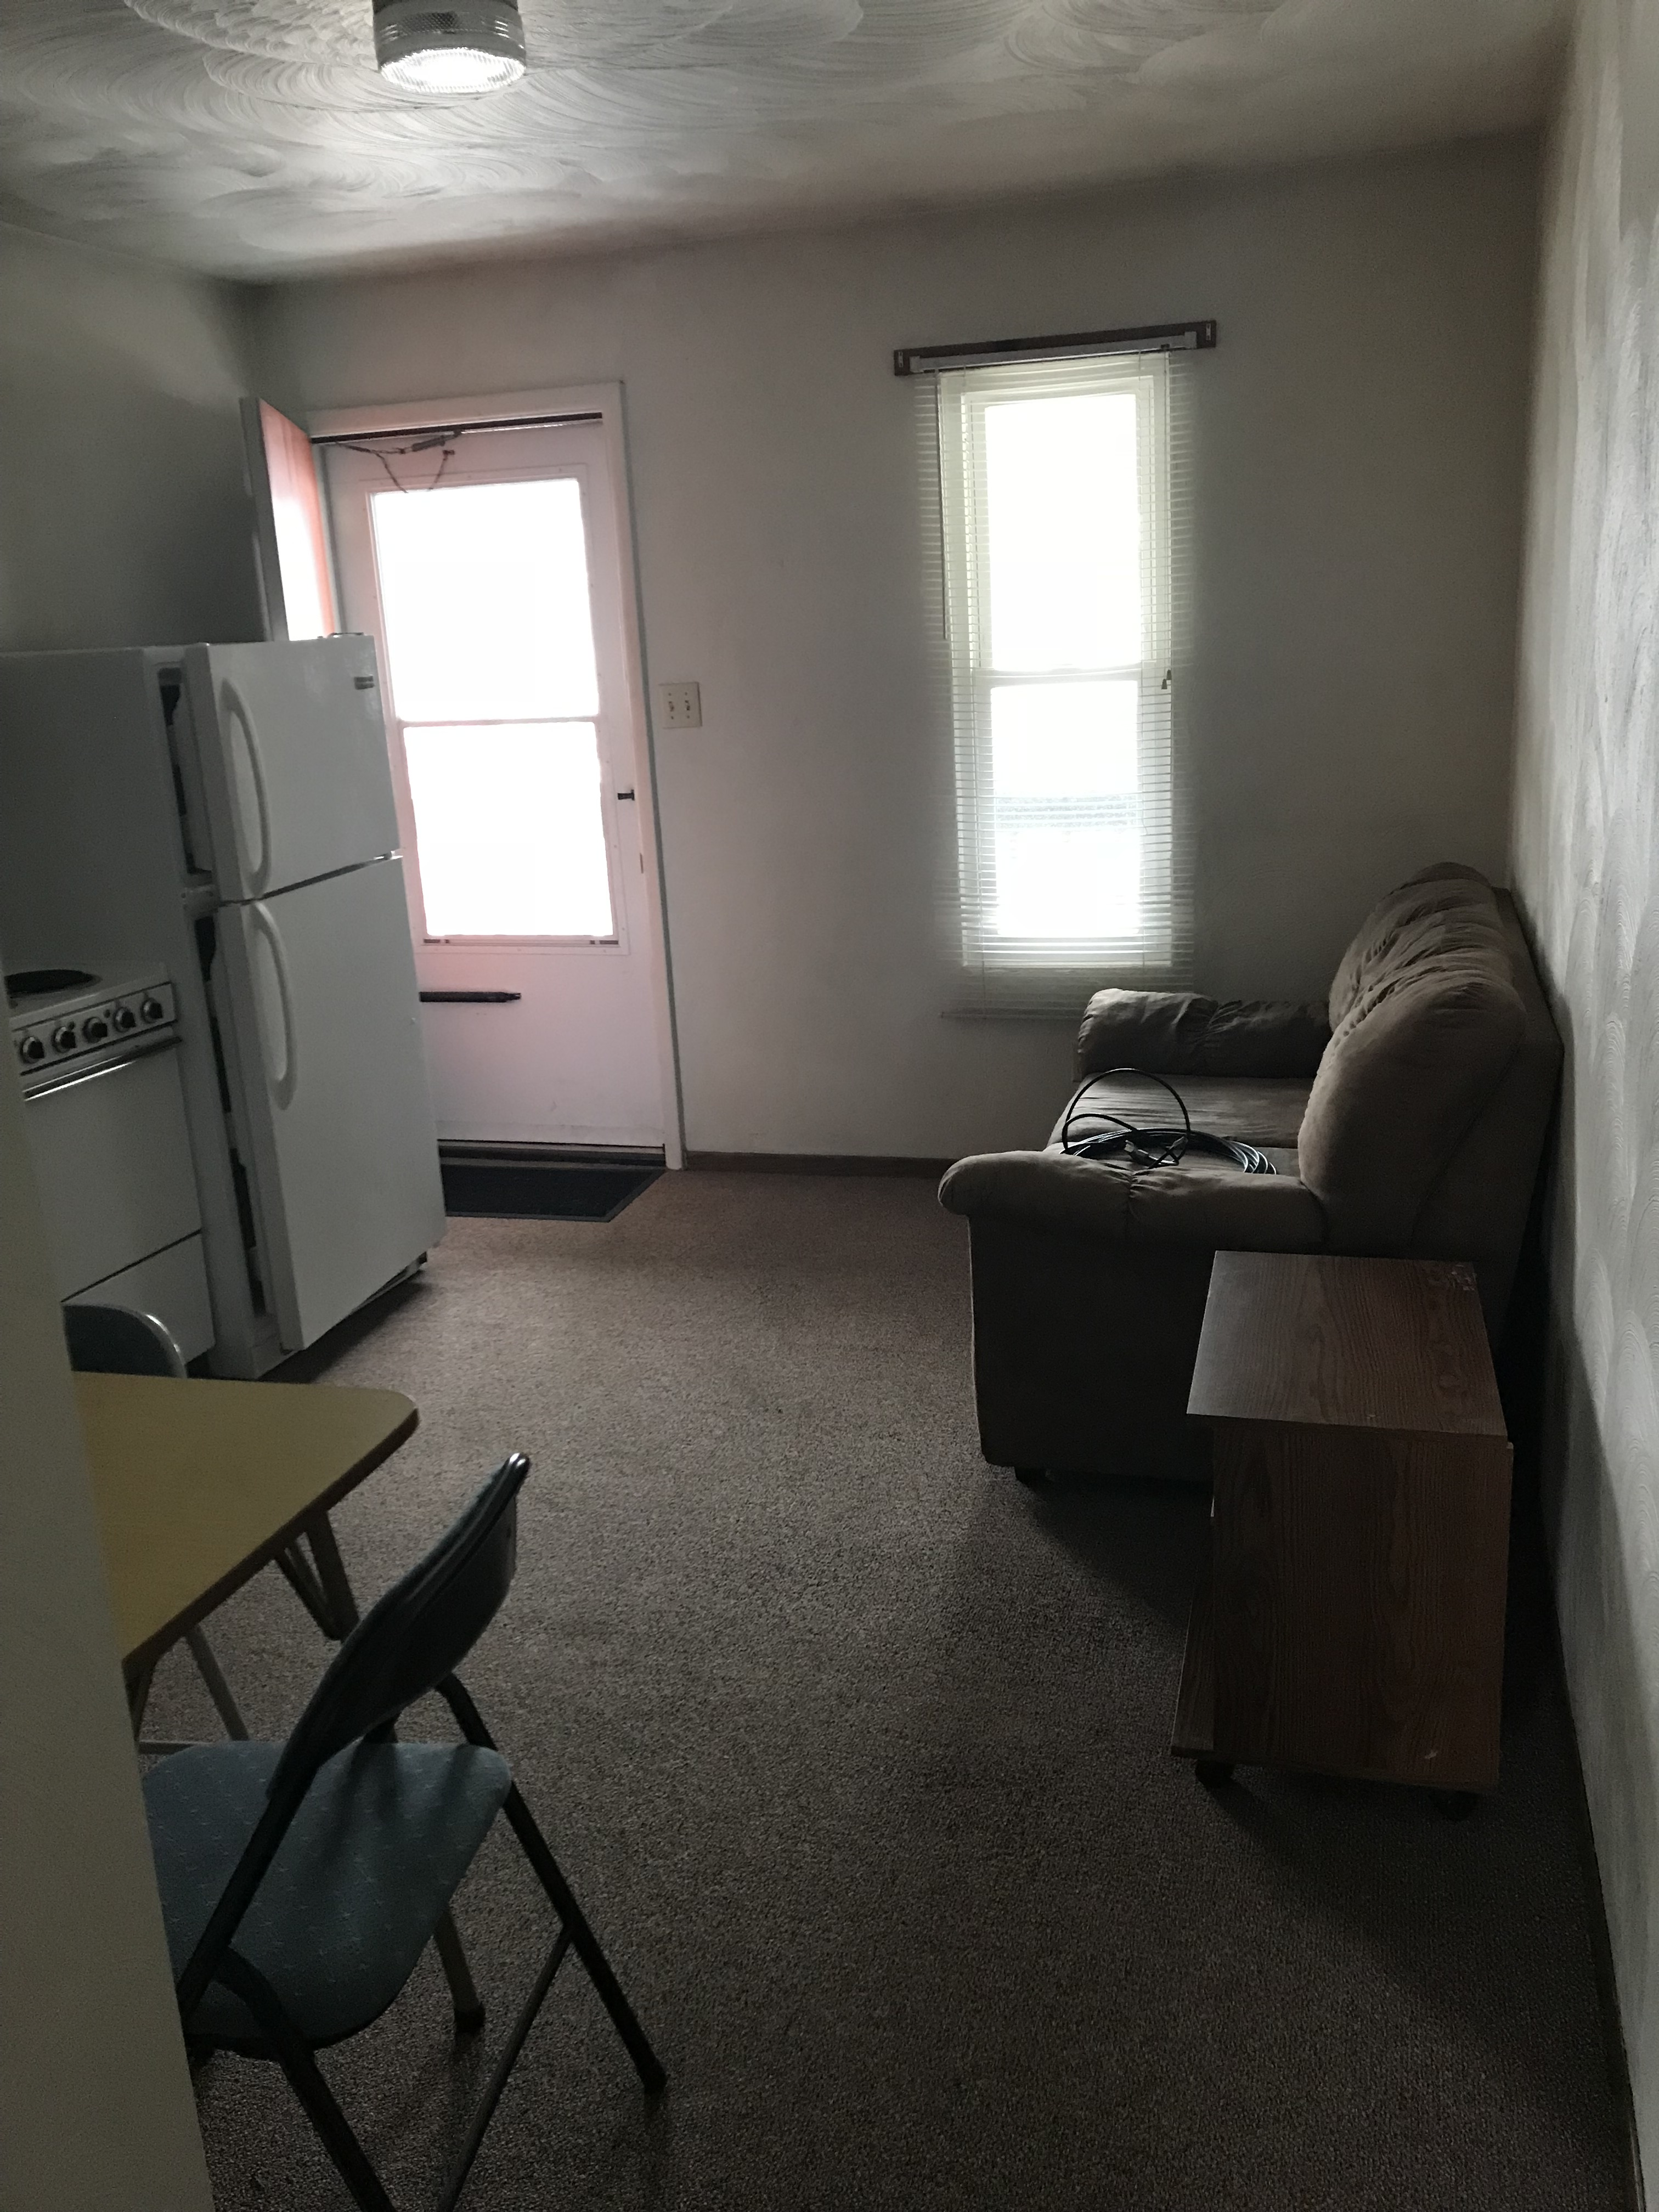 Frick-Apartment-Rentals-Indiana-PA-15701-244-Elkin-Ave2